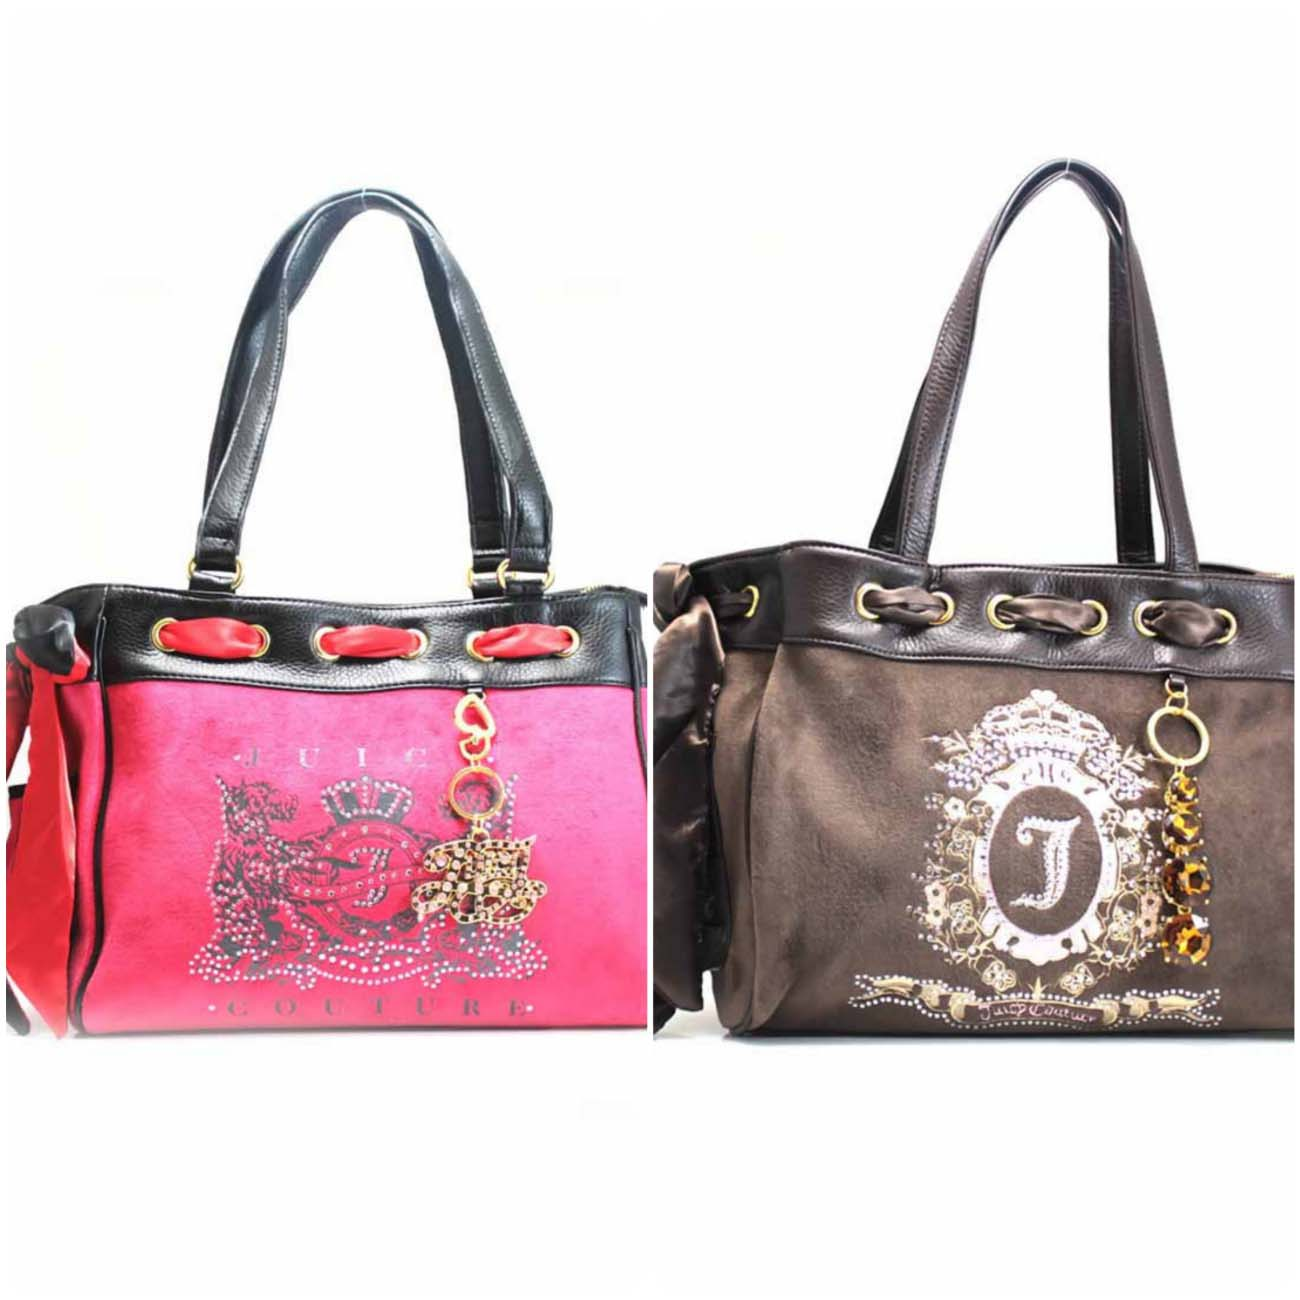 Hand Bags Latest Collection By Stylo | Style.Pk